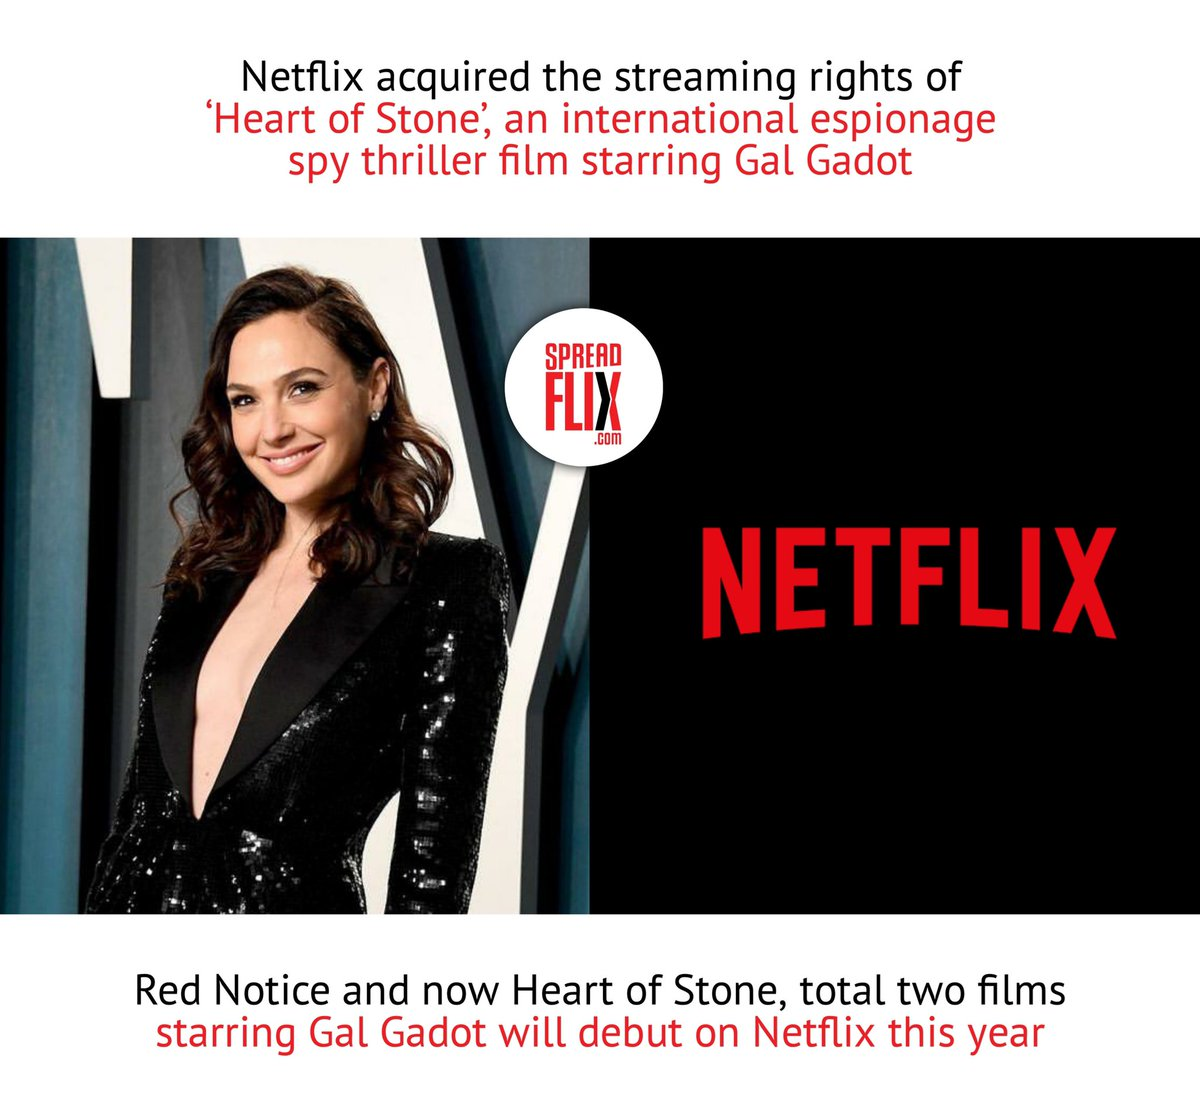 #RedNotice and #HeartOfStone, total two films starring #GalGadot will debut on Netflix this year.   image credits: Getty